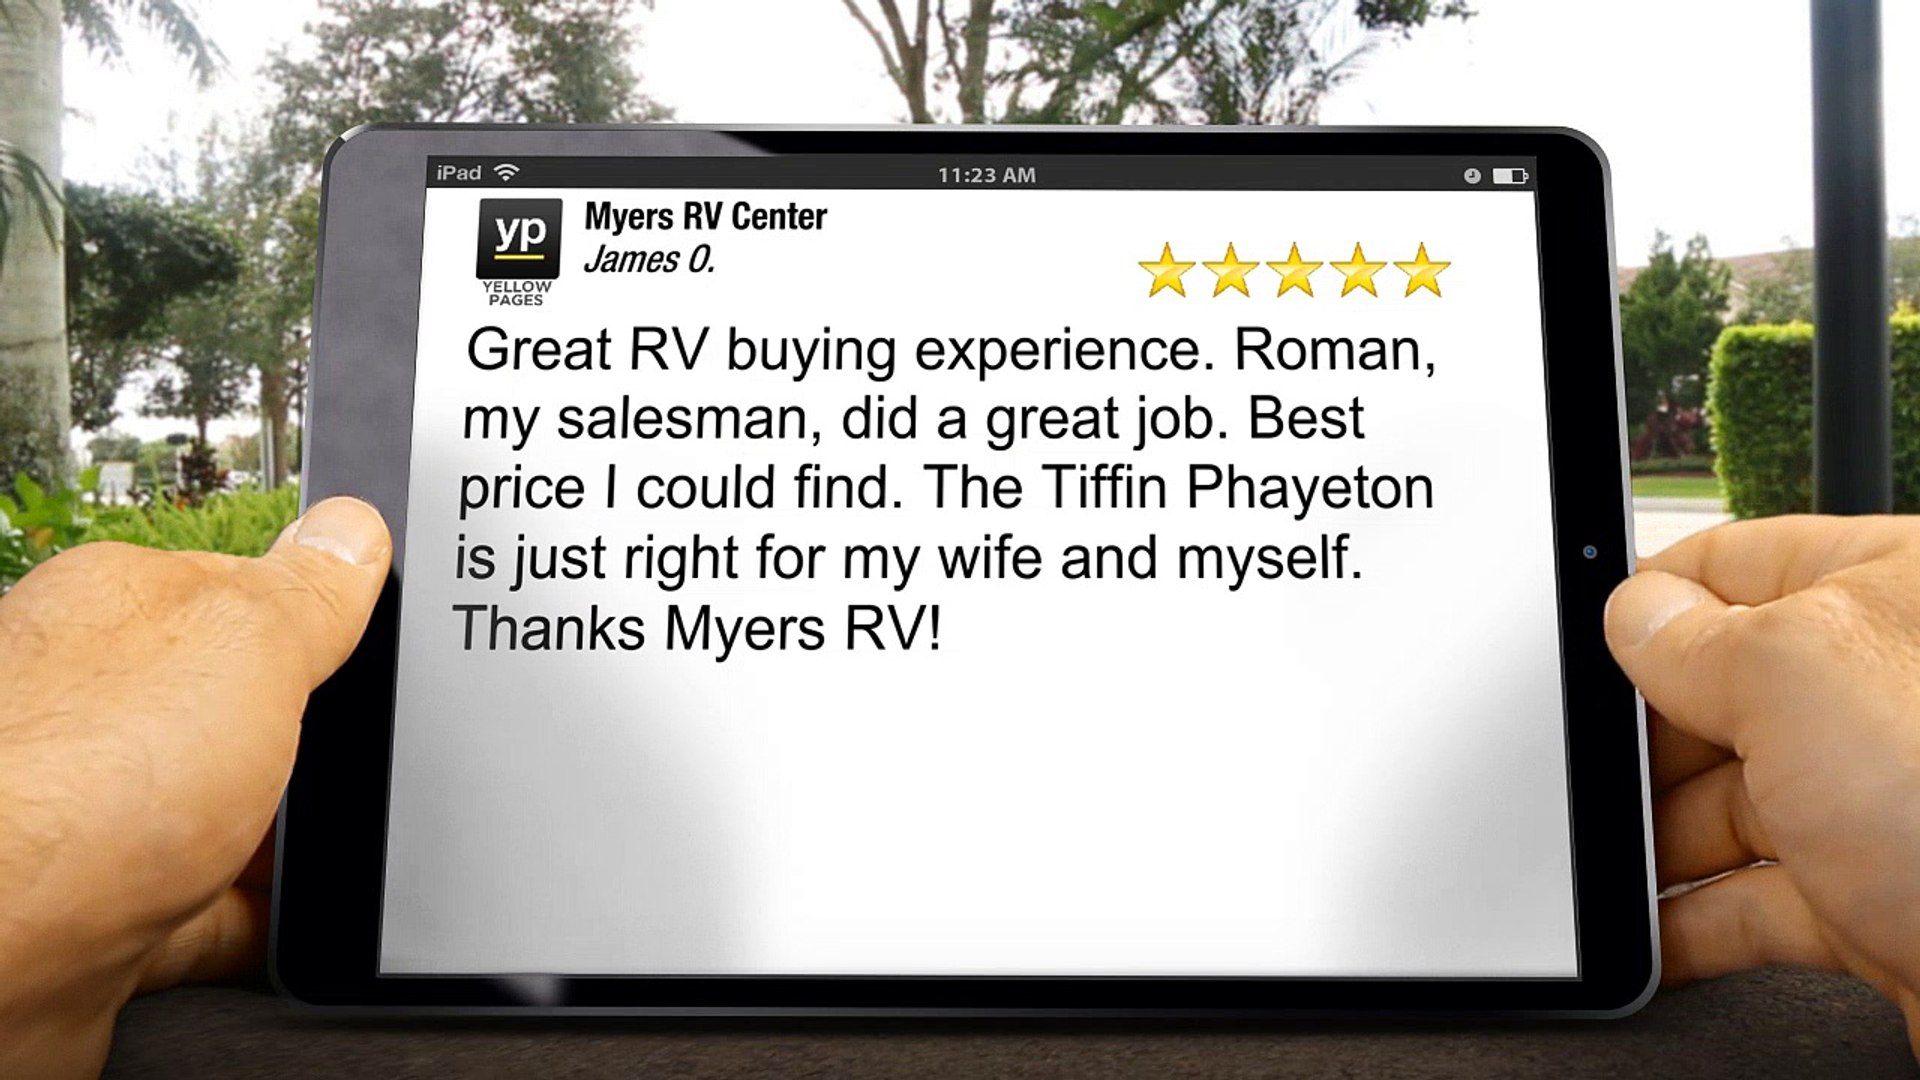 Myers RV Center Albuquerque Exceptional Five Star Review by James O.